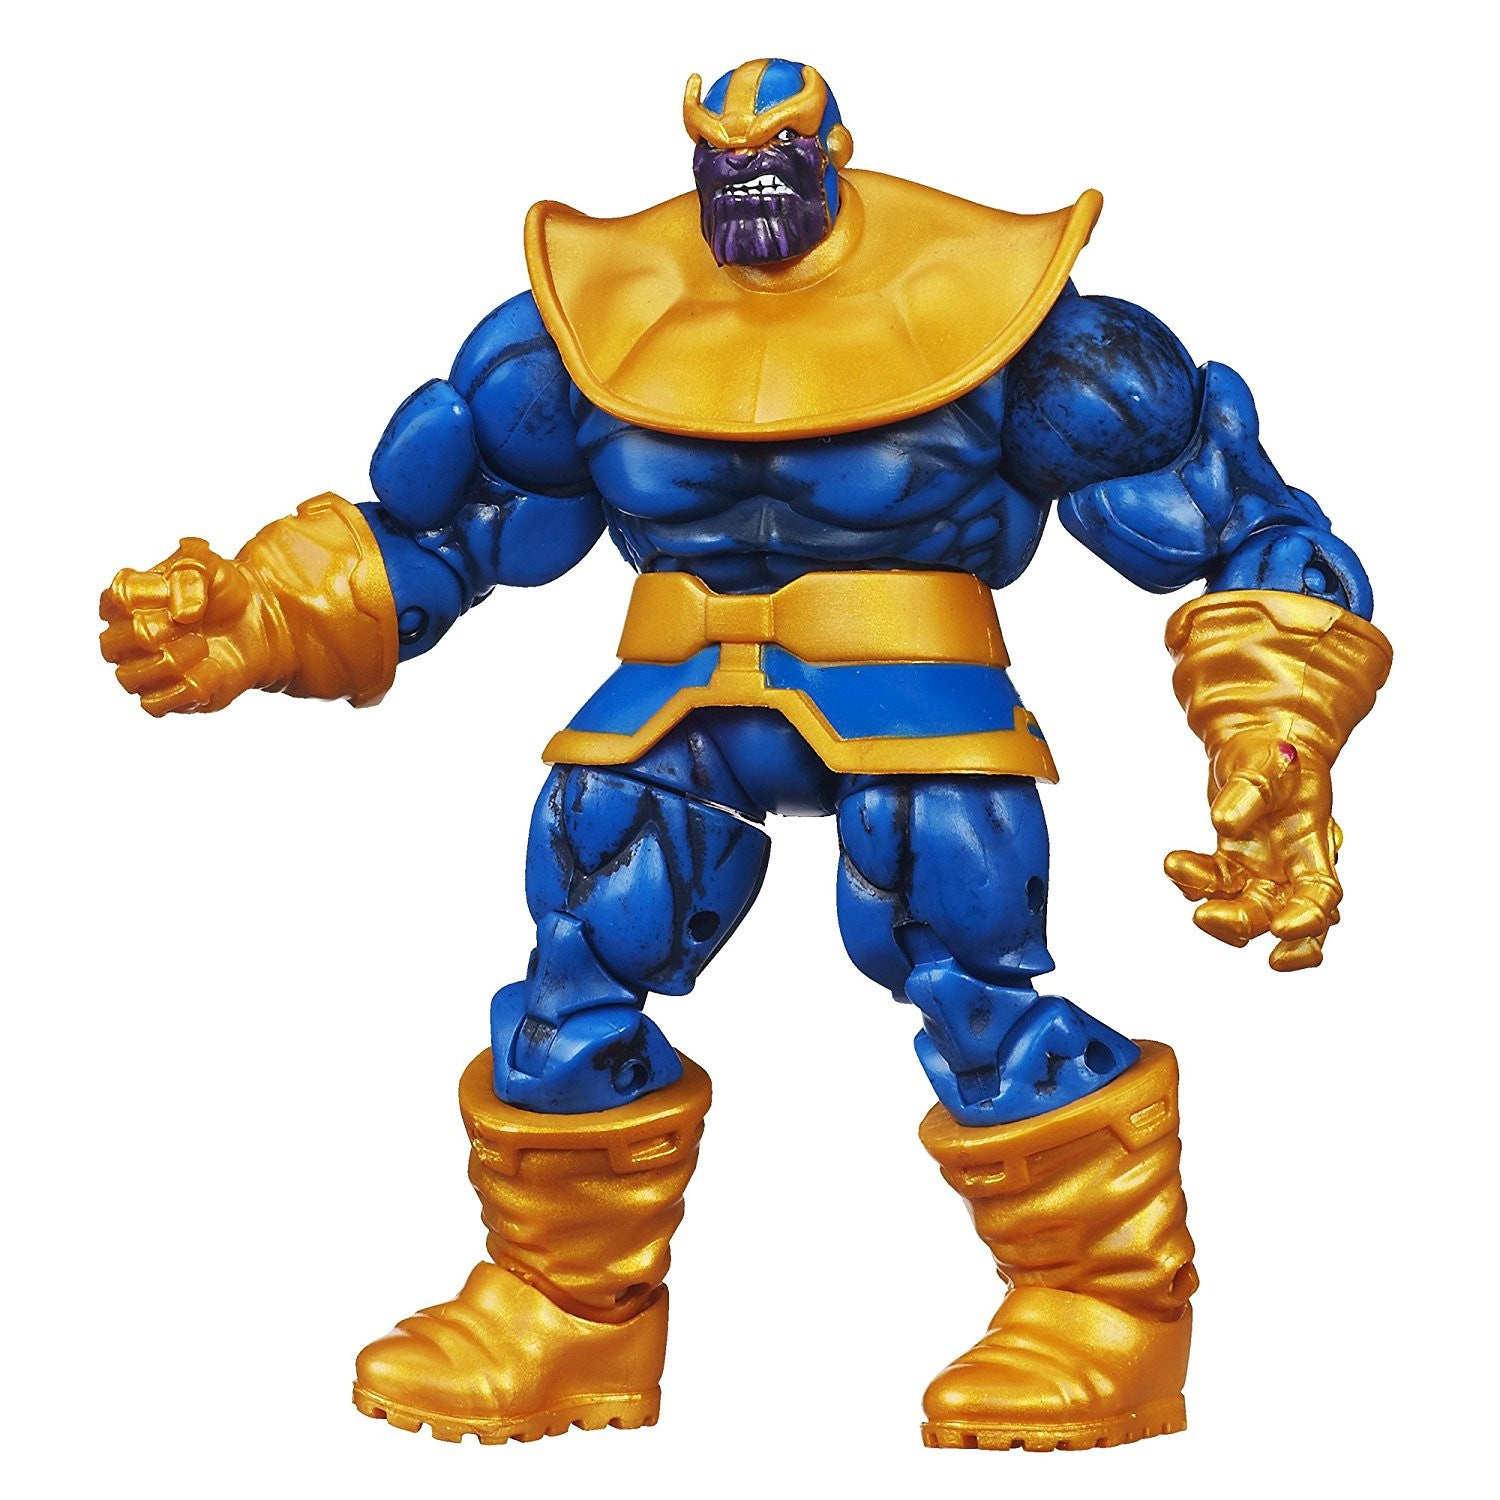 Marvel Universe - 2013 - Series 2 - #010 - Thanos - 3.75 in